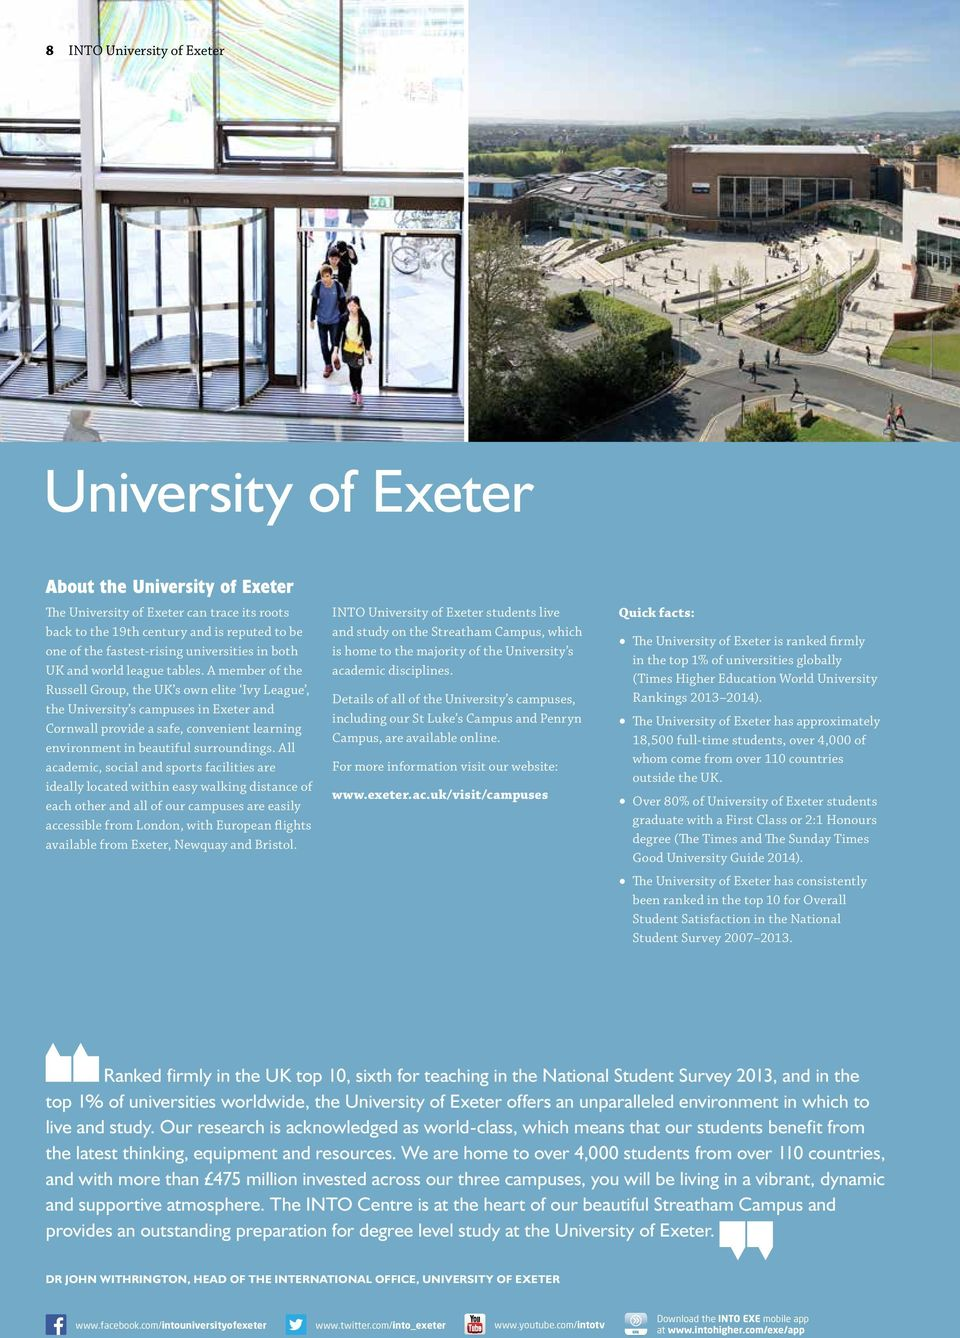 A member of the Russell Group, the UK s own elite Ivy League, the University s campuses in Exeter and Cornwall provide a safe, convenient learning environment in beautiful surroundings.